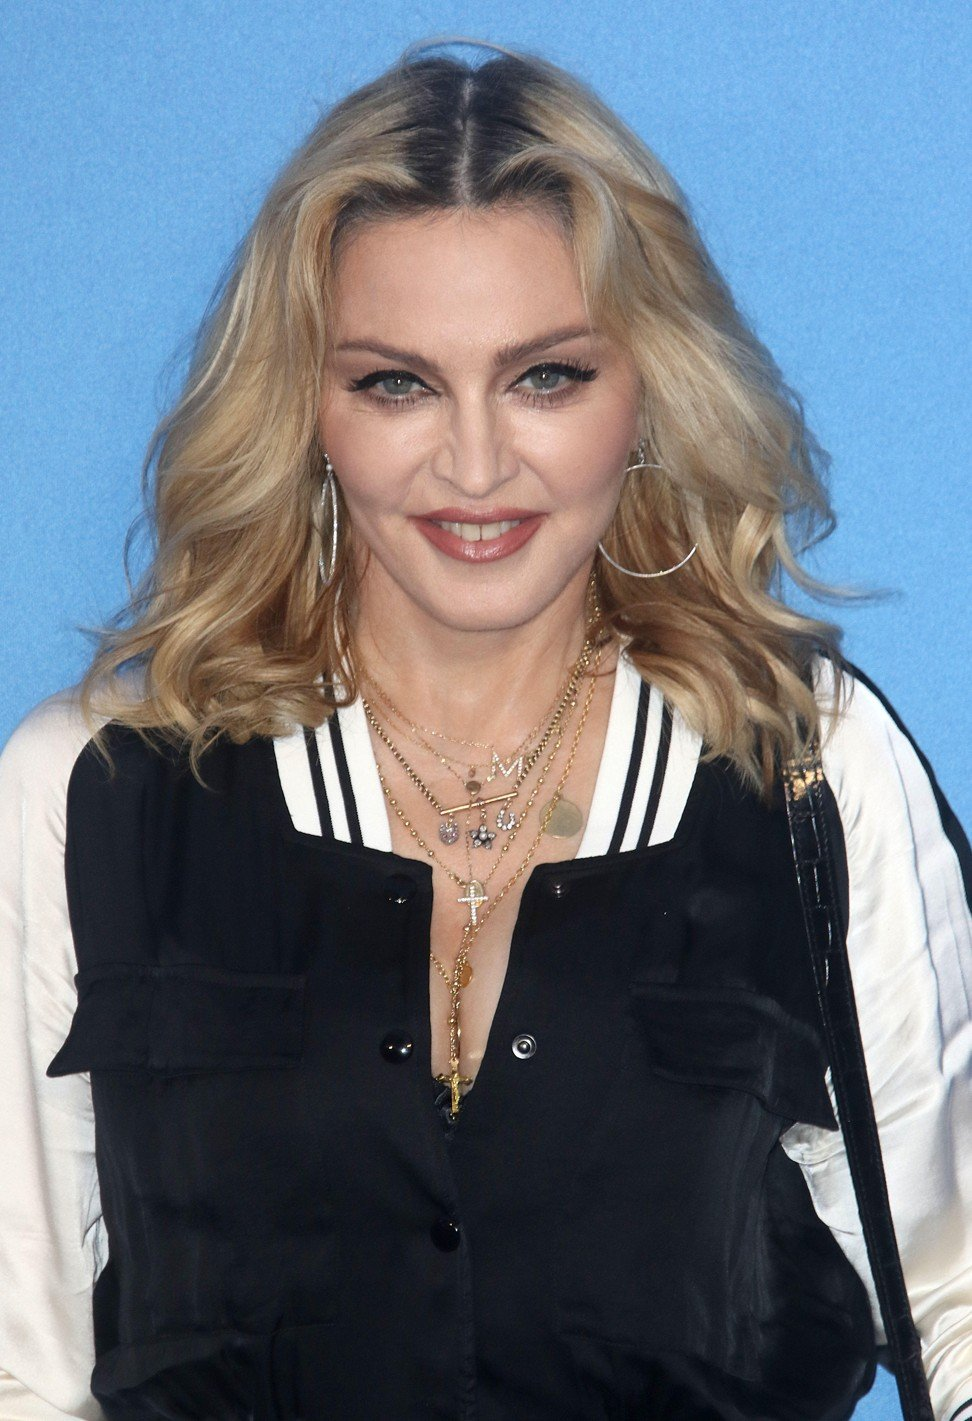 Madonna's 'Blonde Ambition' Dancers Tell Their Own Stories ...